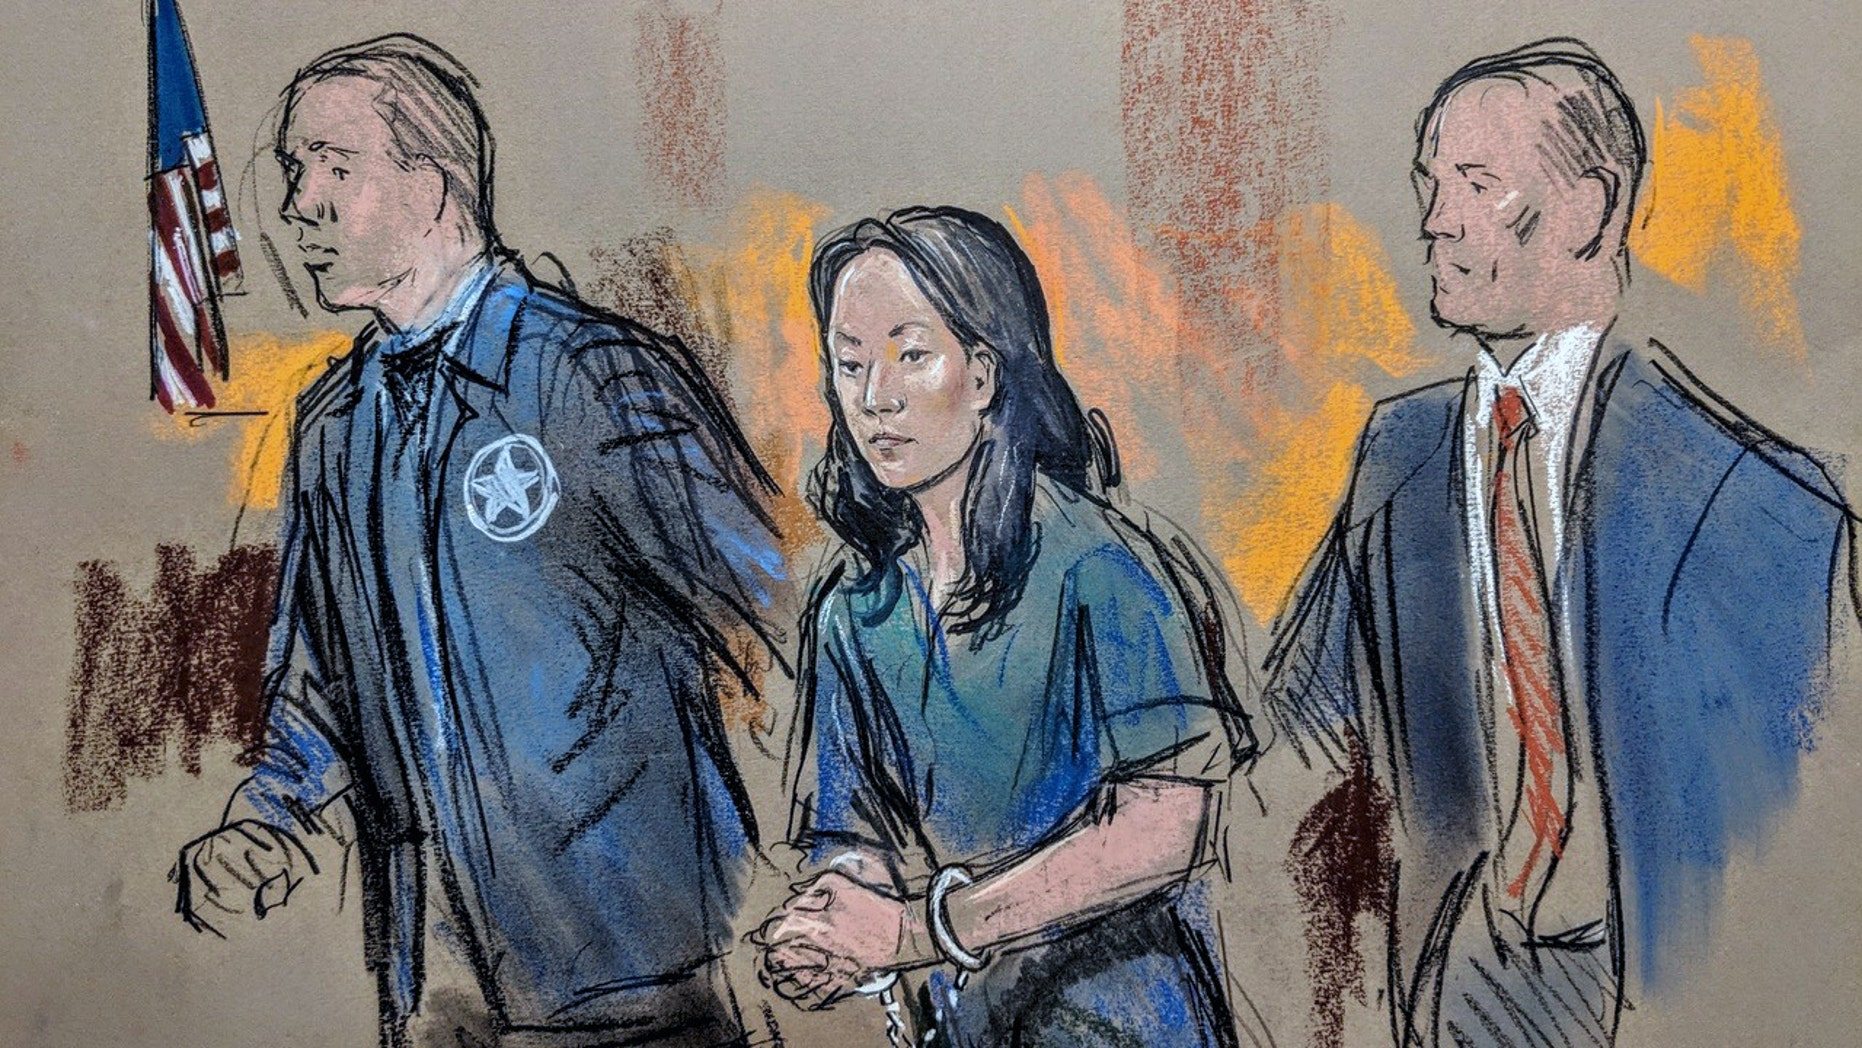 ​Yujing Zhang being led into federal court in West Palm Beach, Fla., on Monday. (William Hennessy Jr. / CourtroomArt.com)